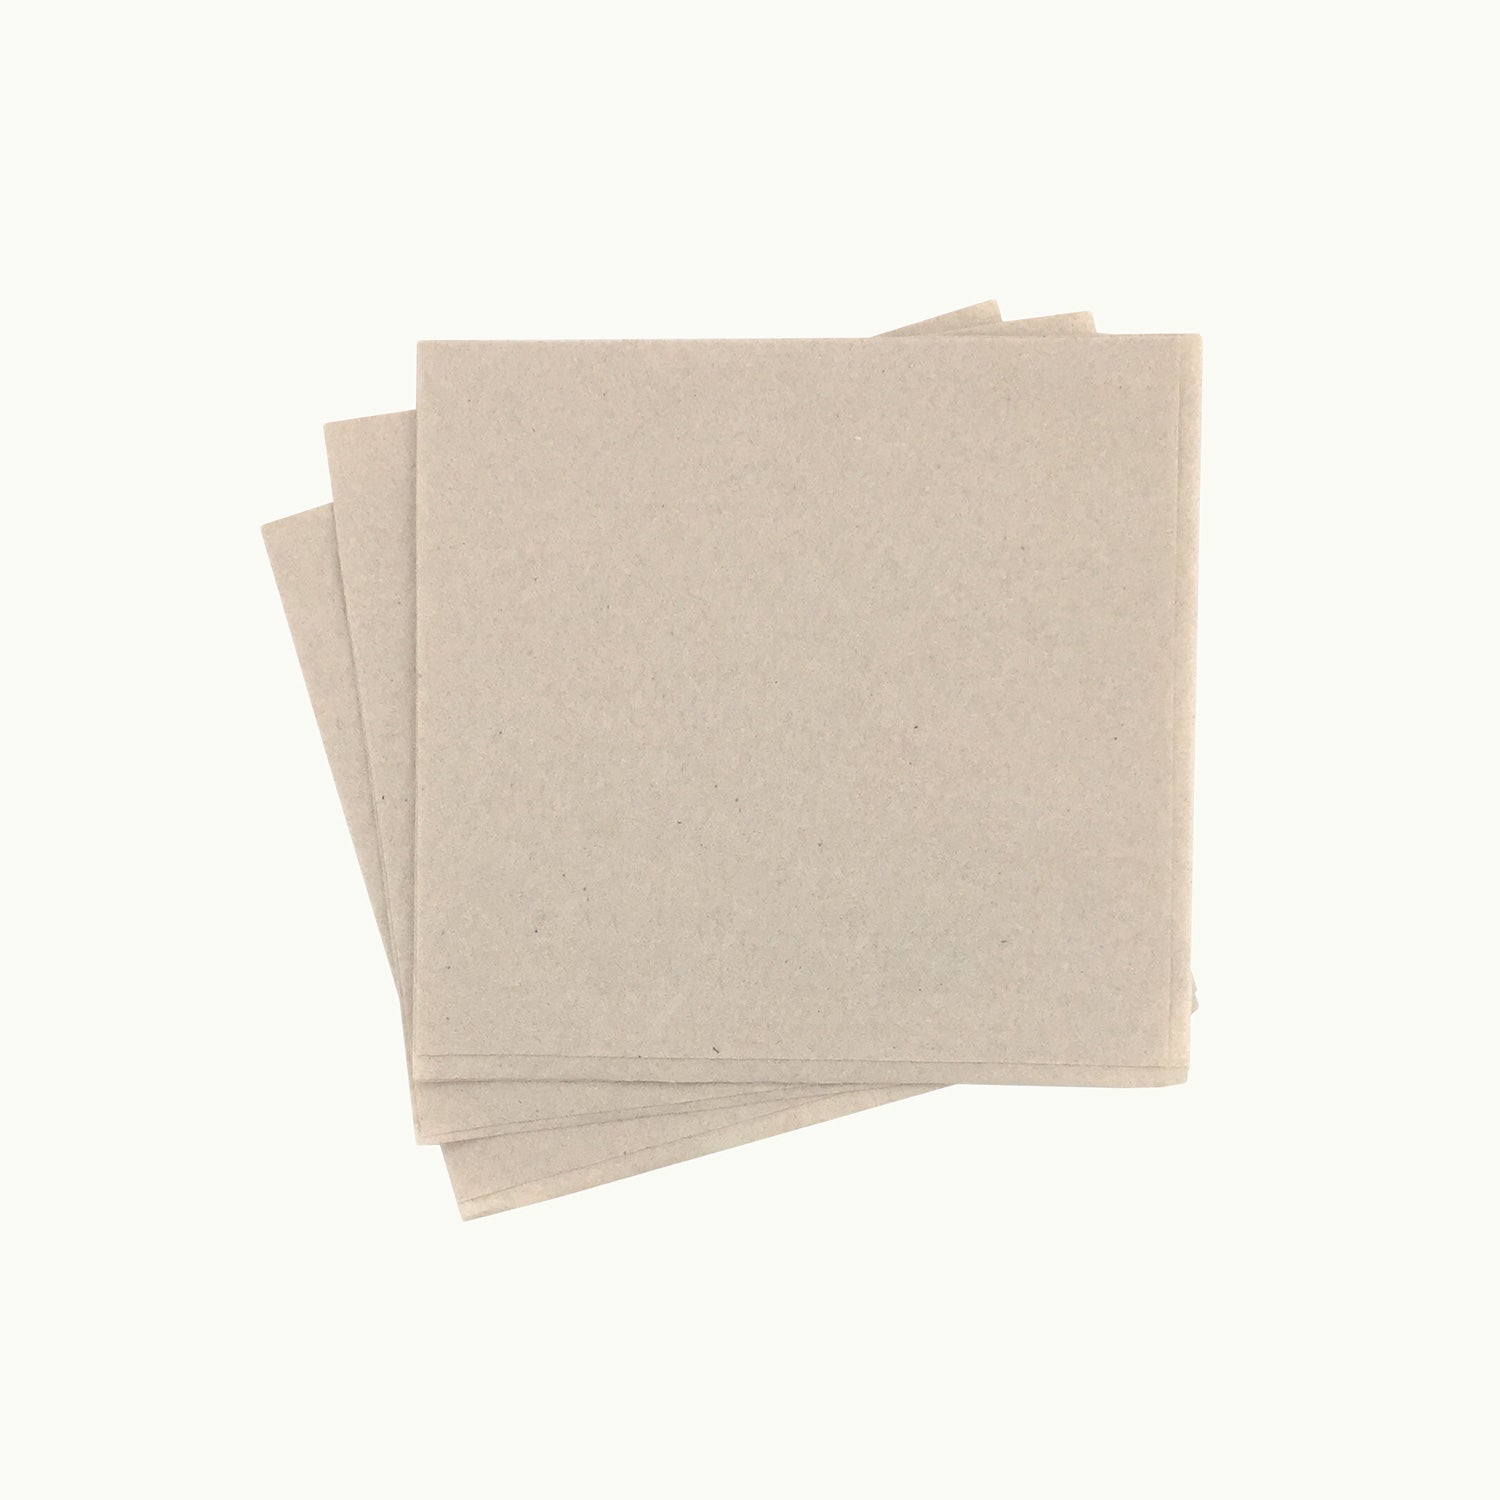 Eco Napkin - 4 Fold Lunch - FSC RECYCLED